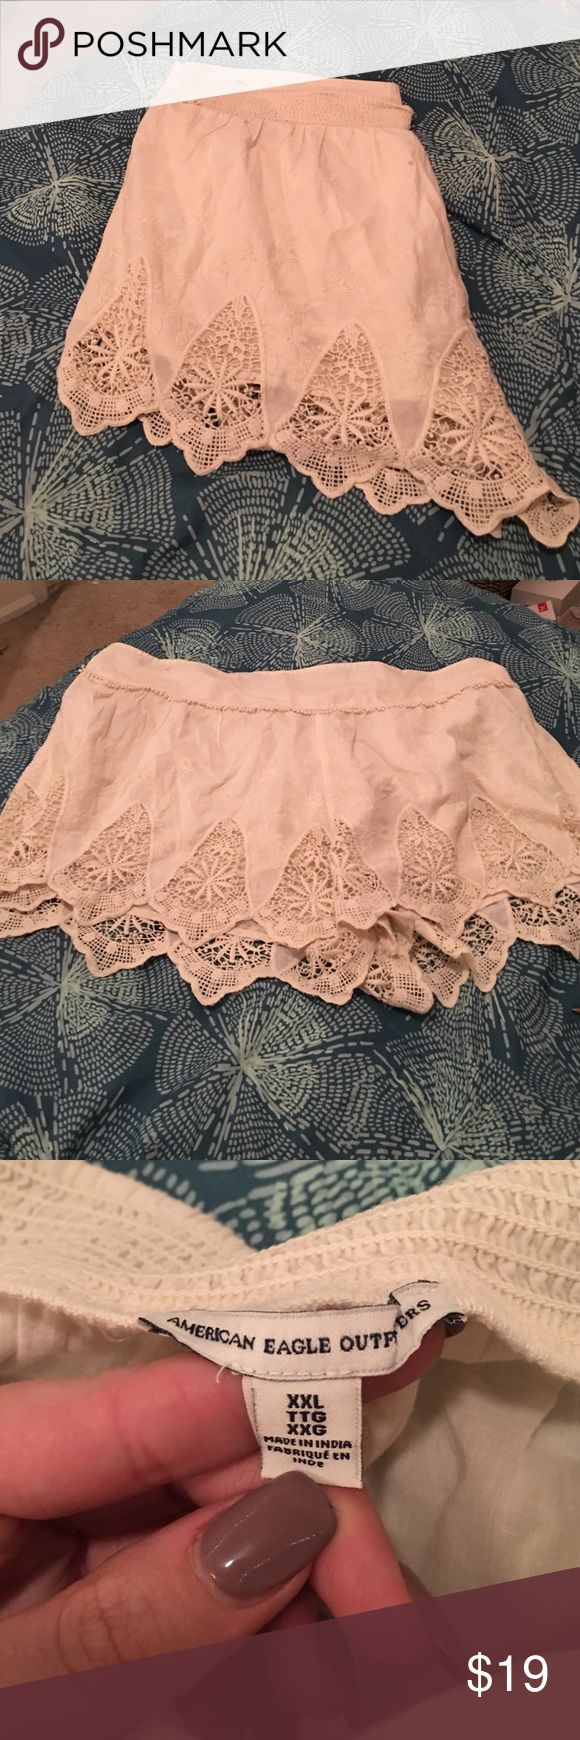 American Eagle Soft Lace Shorts Great condition! Off white/cream Lace Soft Shorts by American Eagle? Stretch waist band! American Eagle Outfitters Shorts